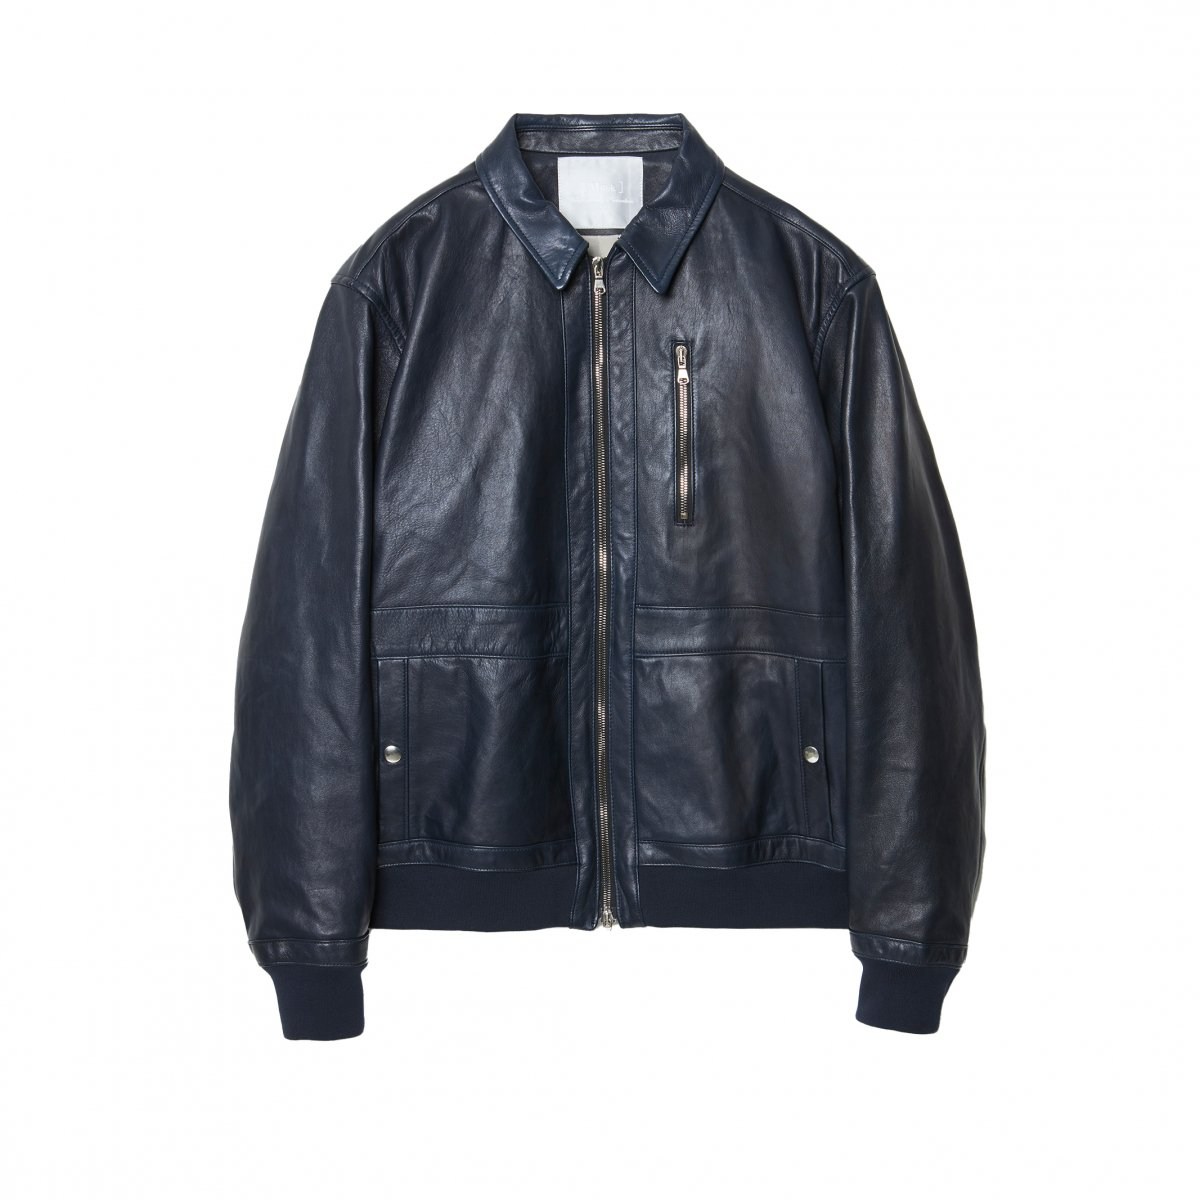 <img class='new_mark_img1' src='https://img.shop-pro.jp/img/new/icons5.gif' style='border:none;display:inline;margin:0px;padding:0px;width:auto;' />FRENCH VEGETAN LAMB LEATHER MILITARY BLOUSON / DARK NAVY